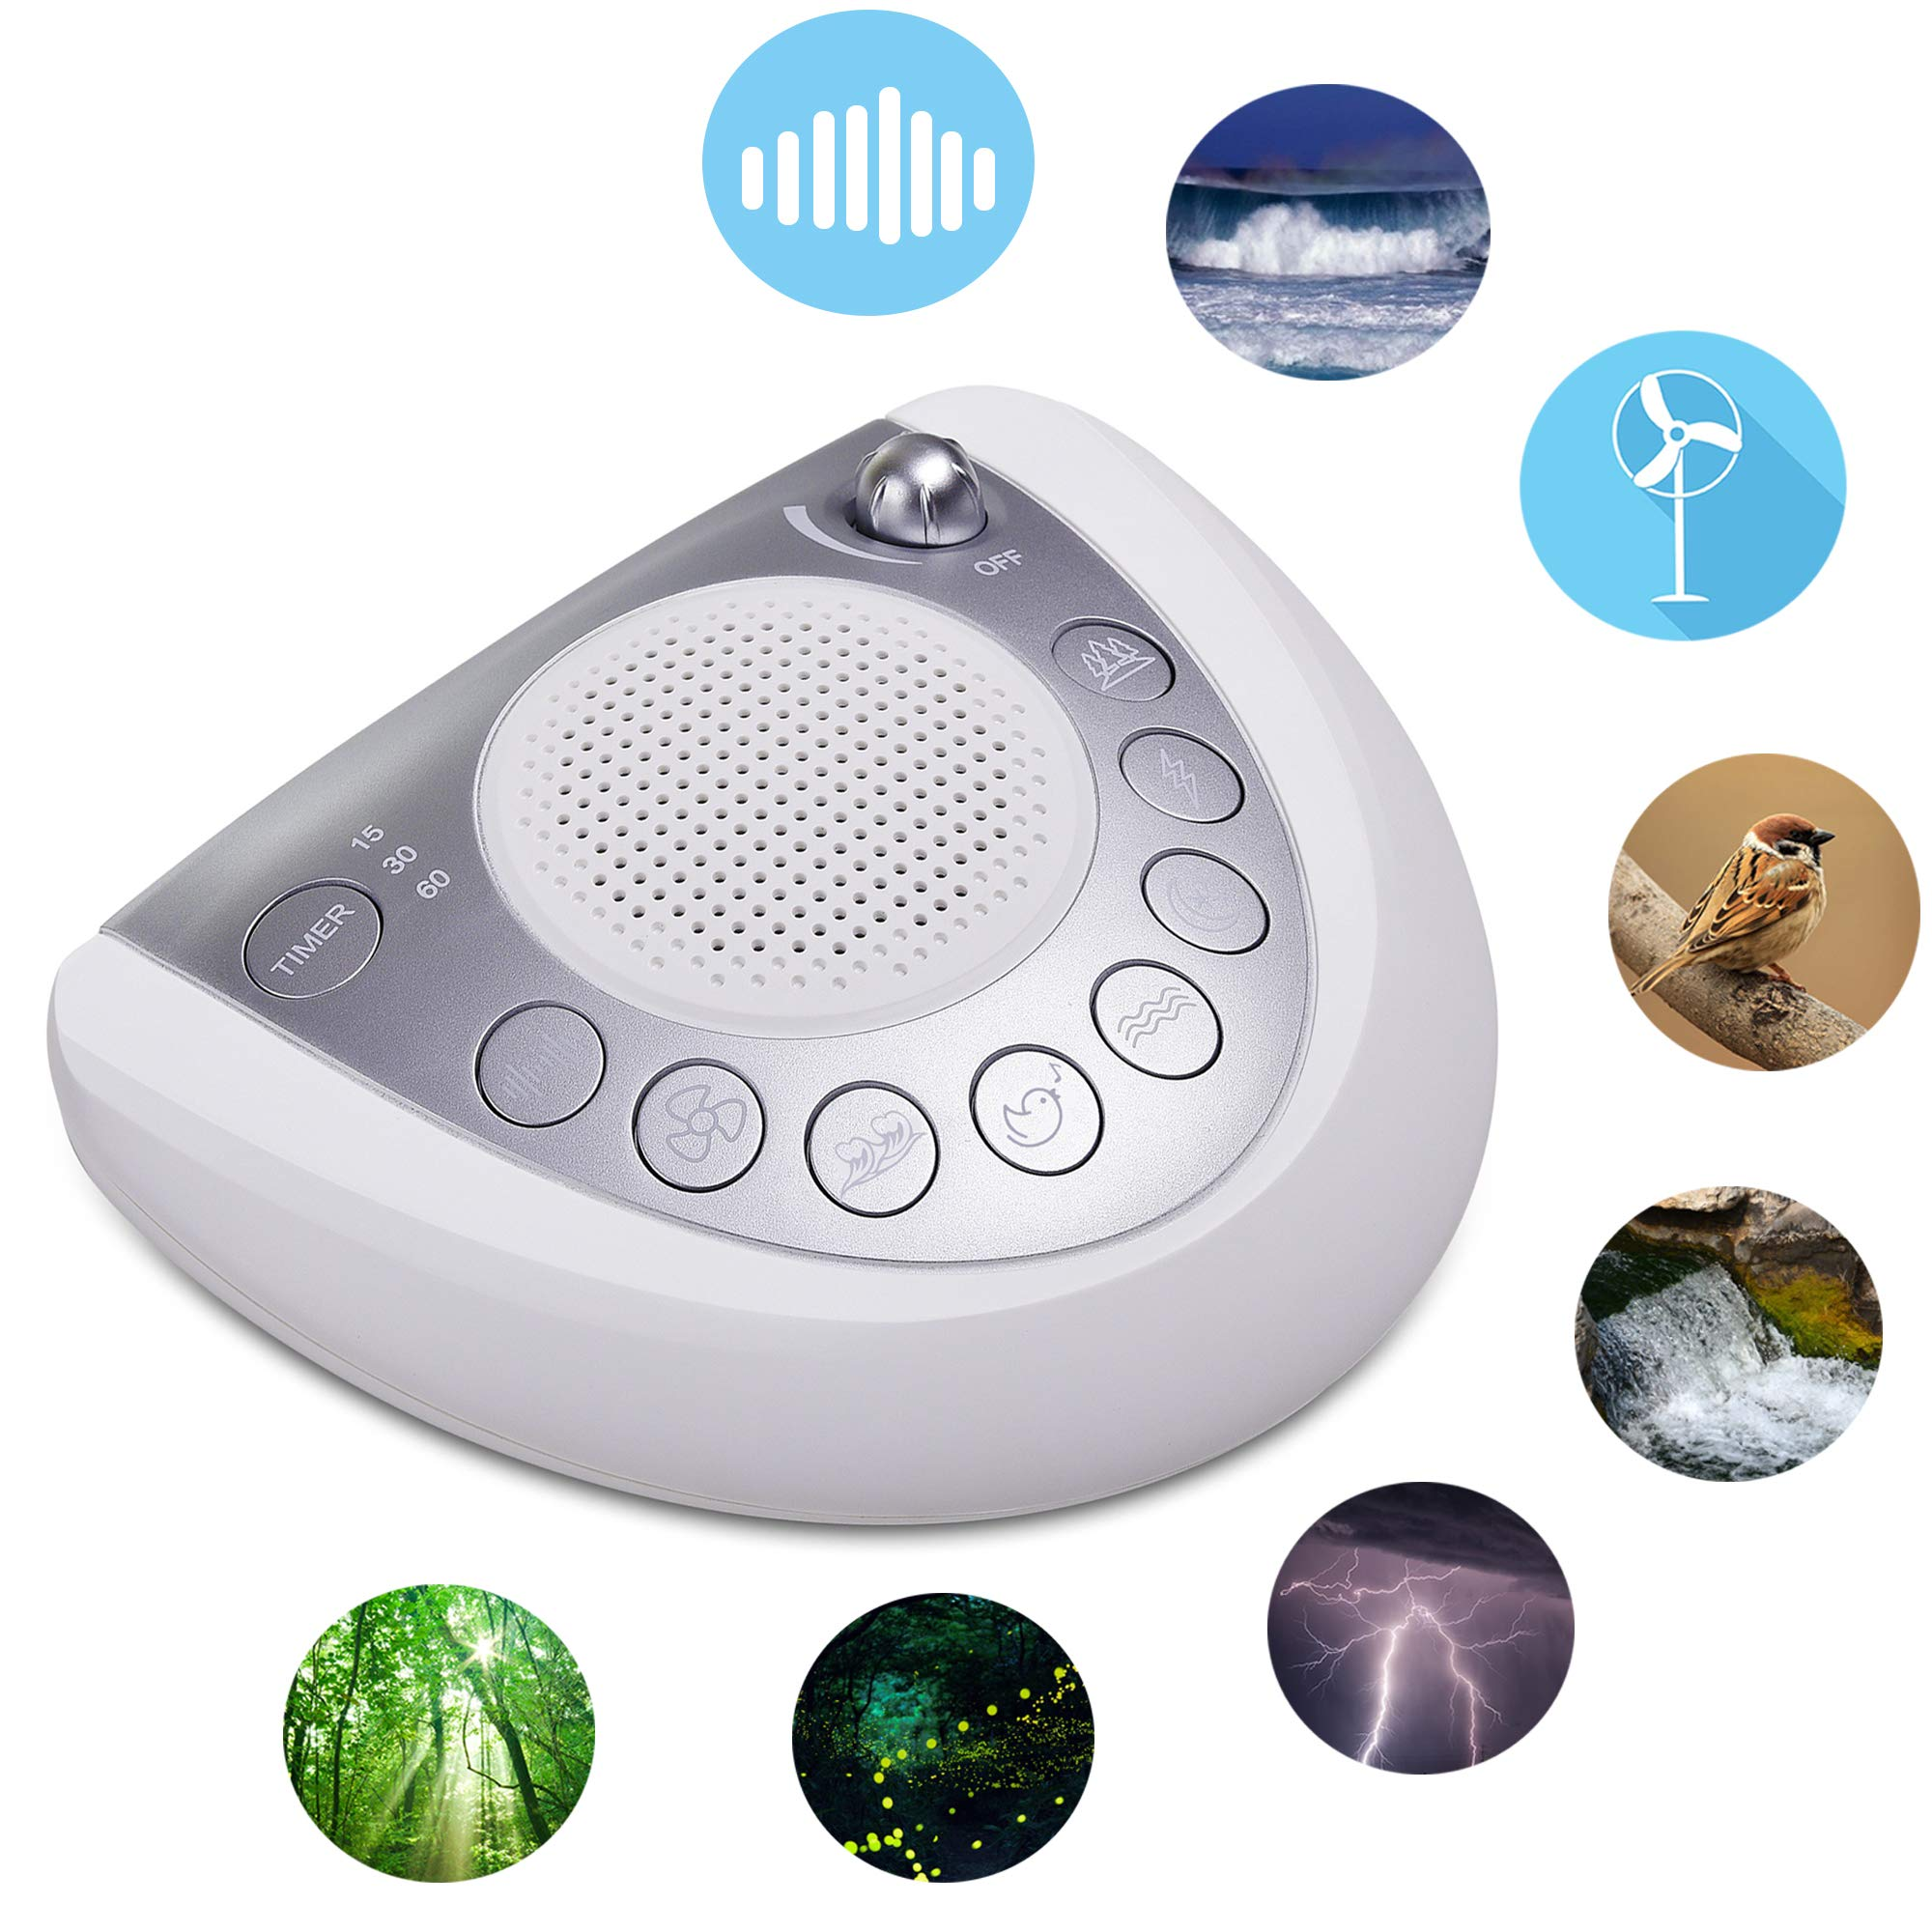 White Noise Sound Machine - Onlyee Sleep Therapy Spa Machine with 8 Soothing Natural Sounds for Sleeping, Battery or AC Powered, 3 Auto-Off Timer Option with 2 USB Charging Port, Headphone Jack